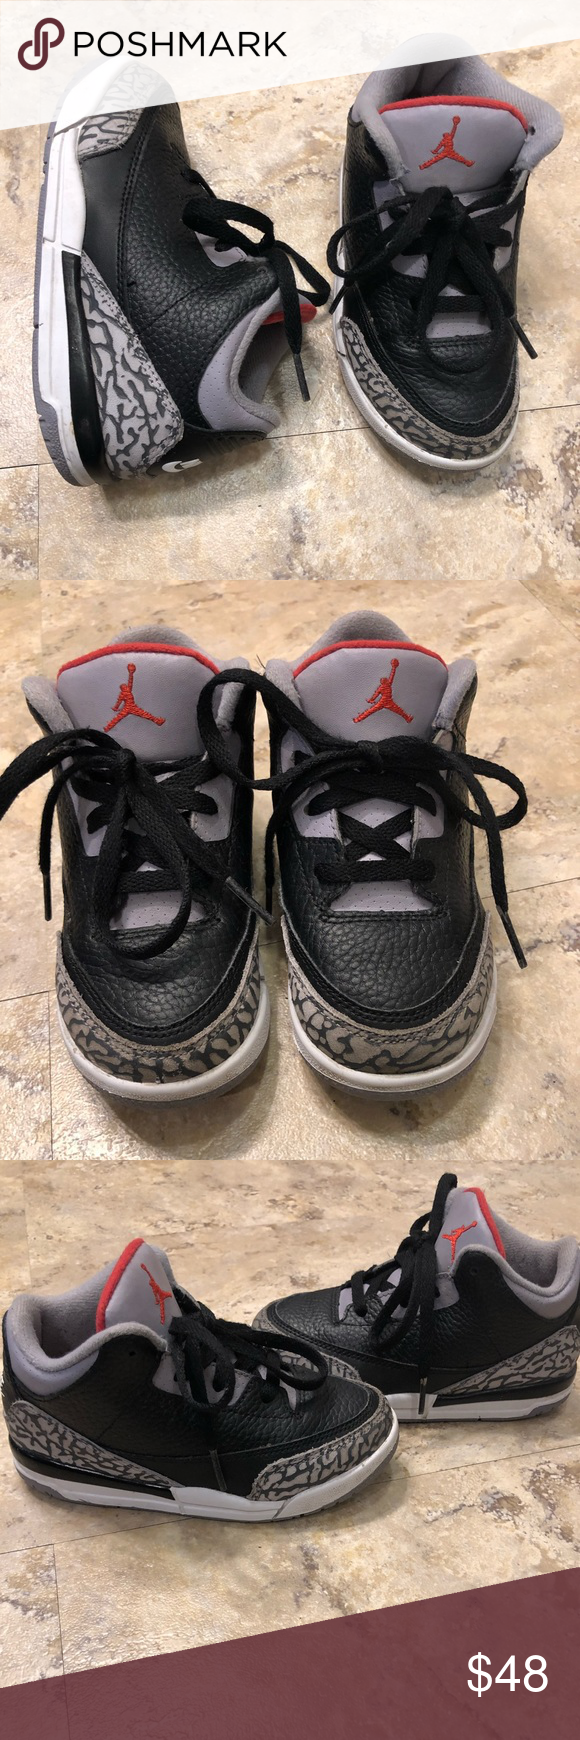 sports shoes c7d6d aced7 Jordan Retro III 3 Black Cement Toddler Size 9C Pre owned ...